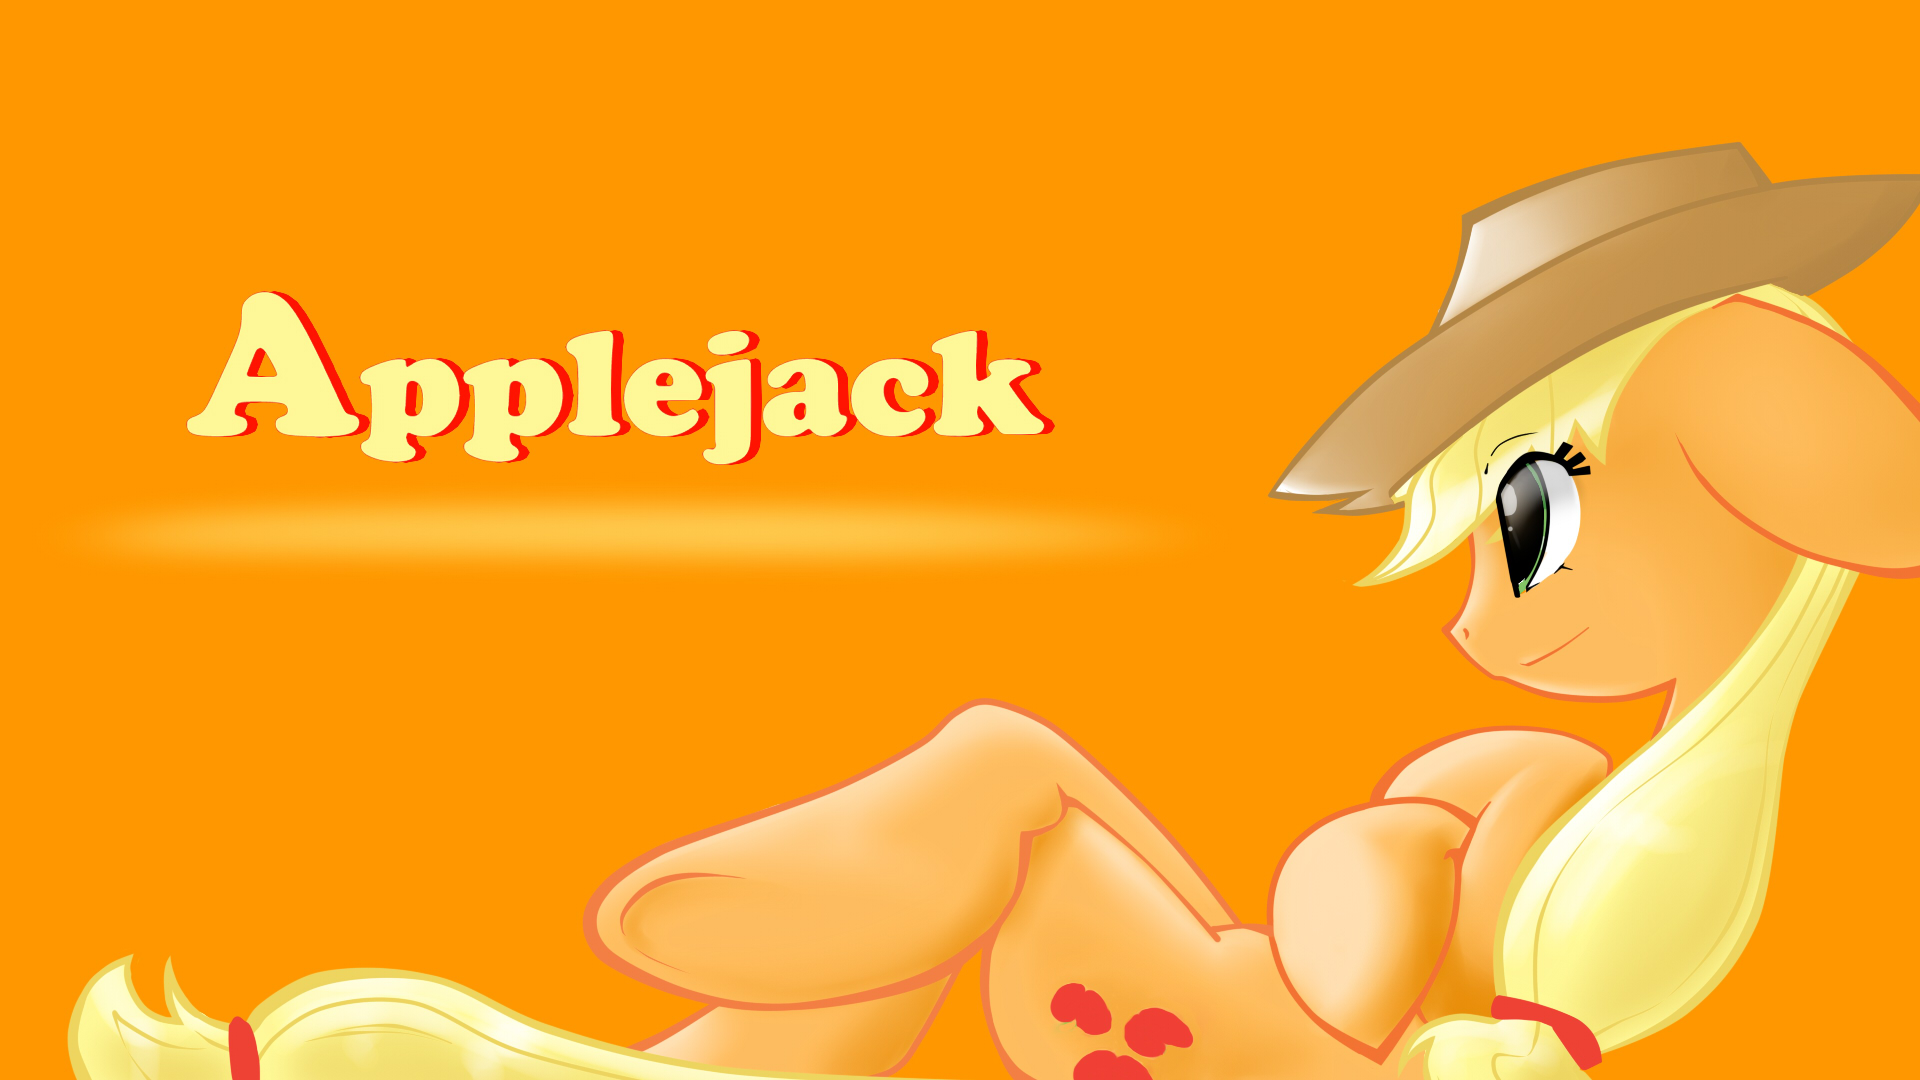 Applejack. 0% shade opacity. by Animeculture